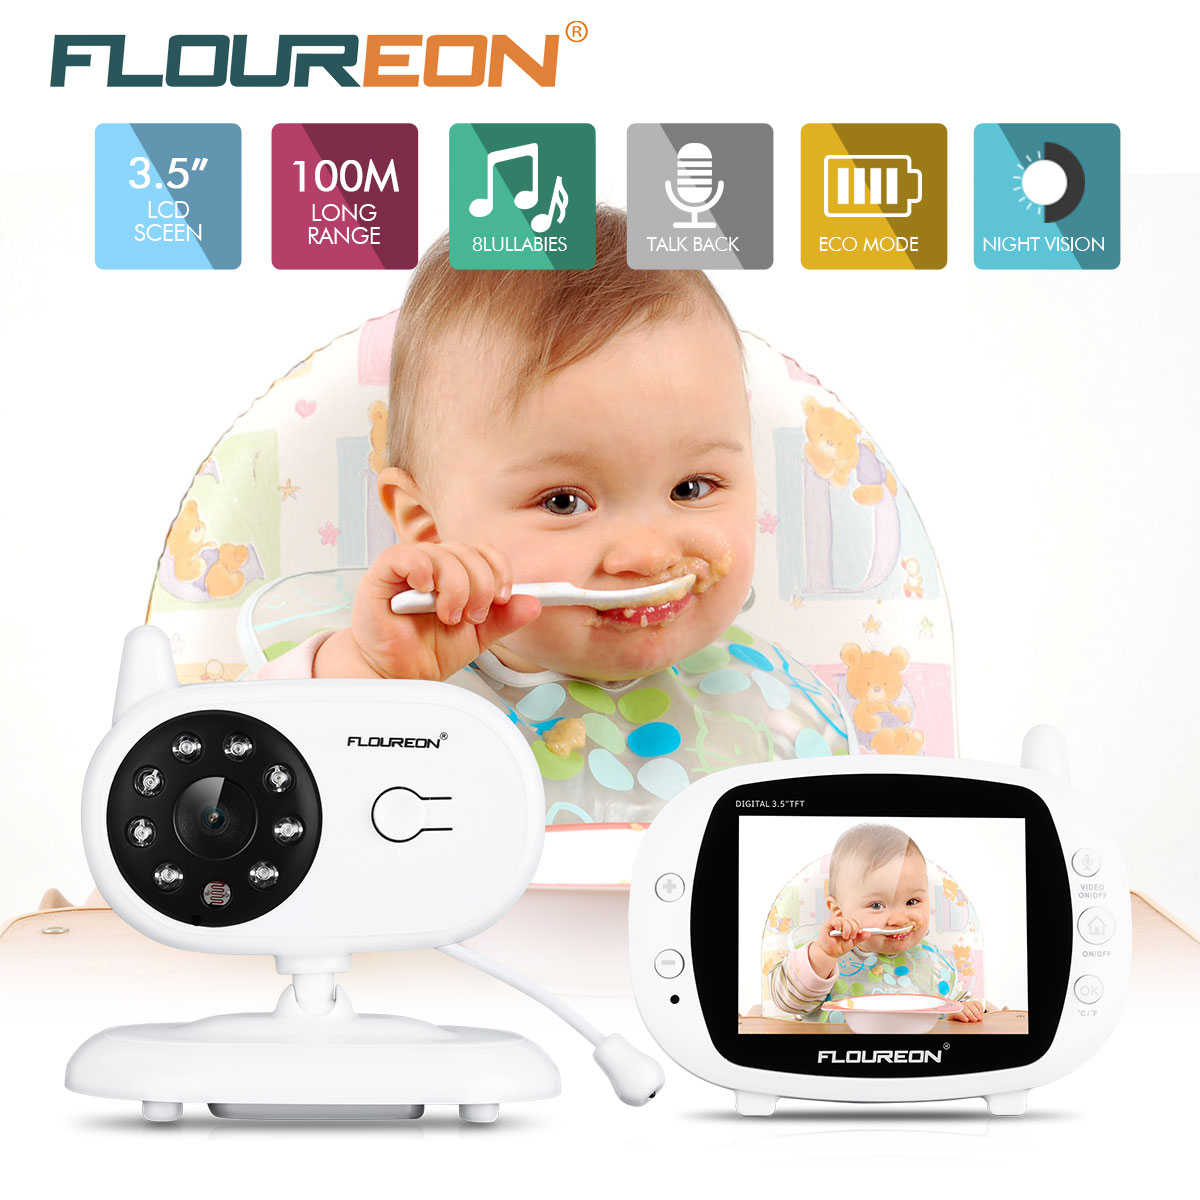 10e57b32eac5 Detail Feedback Questions about FLOUREON 3.5   Digital Wireless Baby Monitor  LCD Display Video Nanny Security Camera Temperature 2 Way Talk Night Vision  on ...